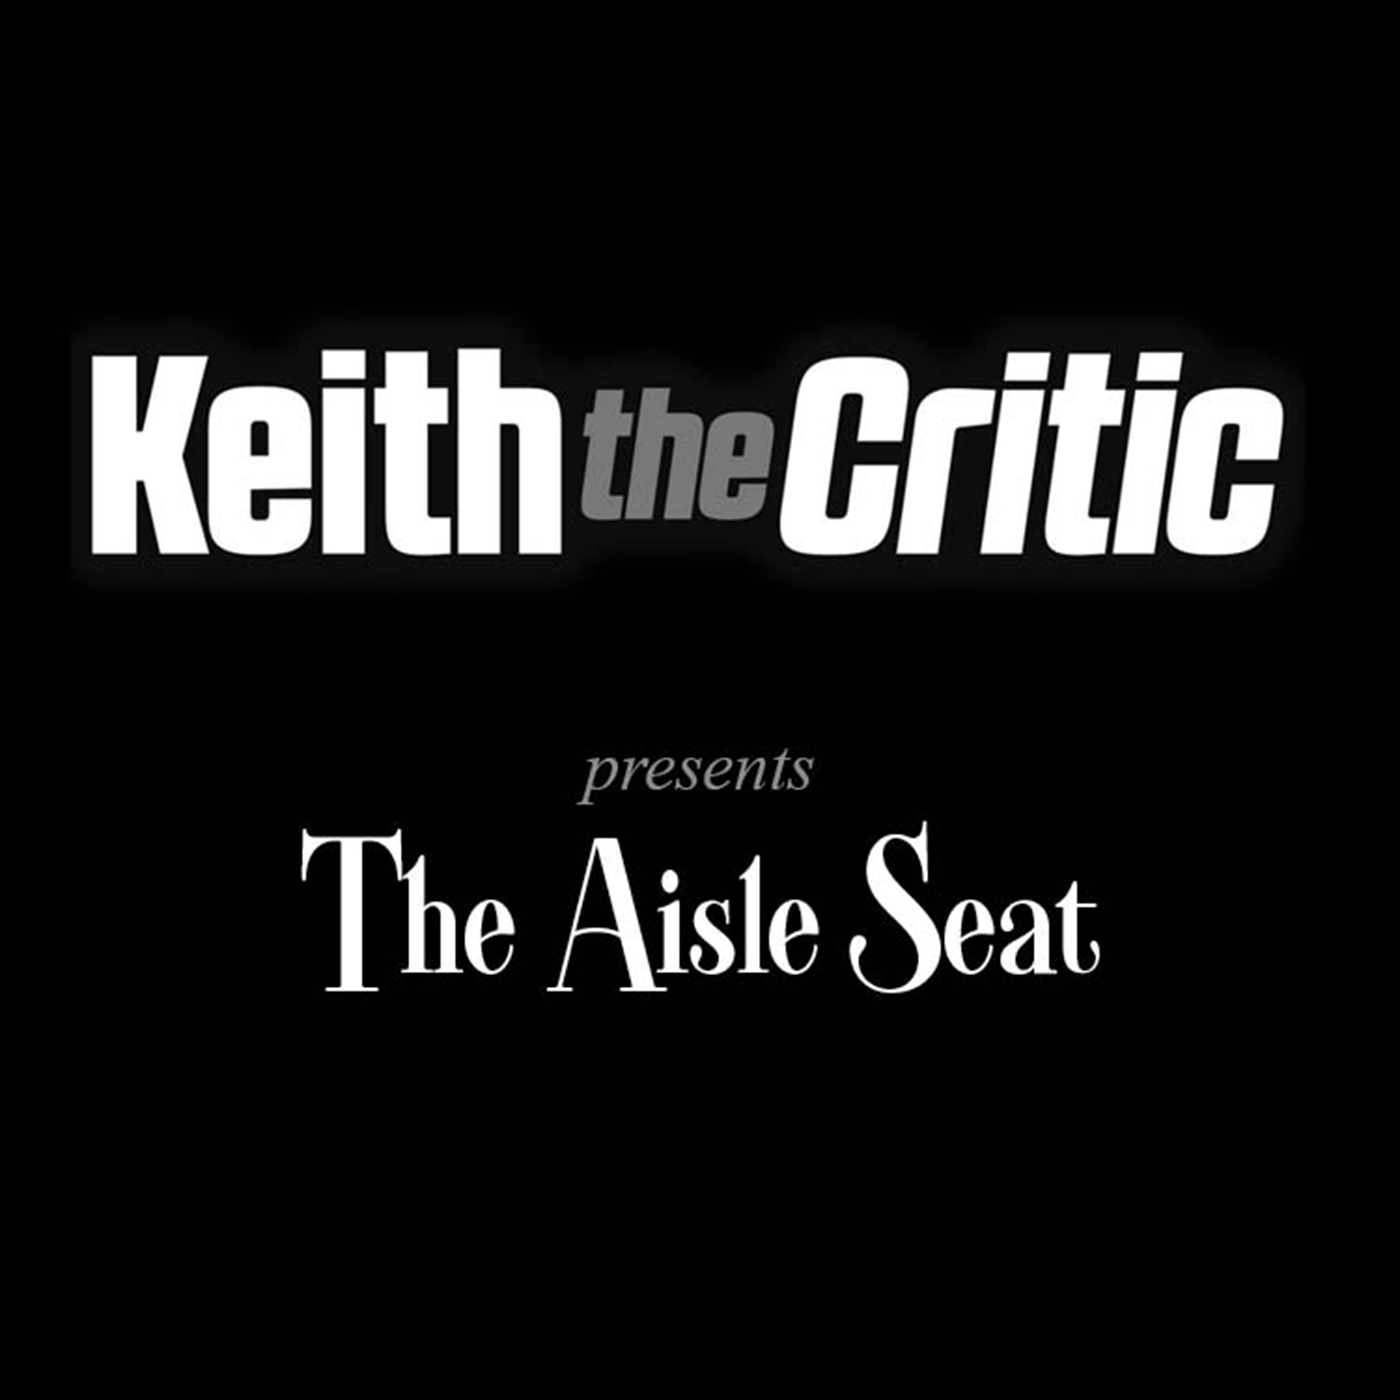 Artwork for podcast The Aisle Seat